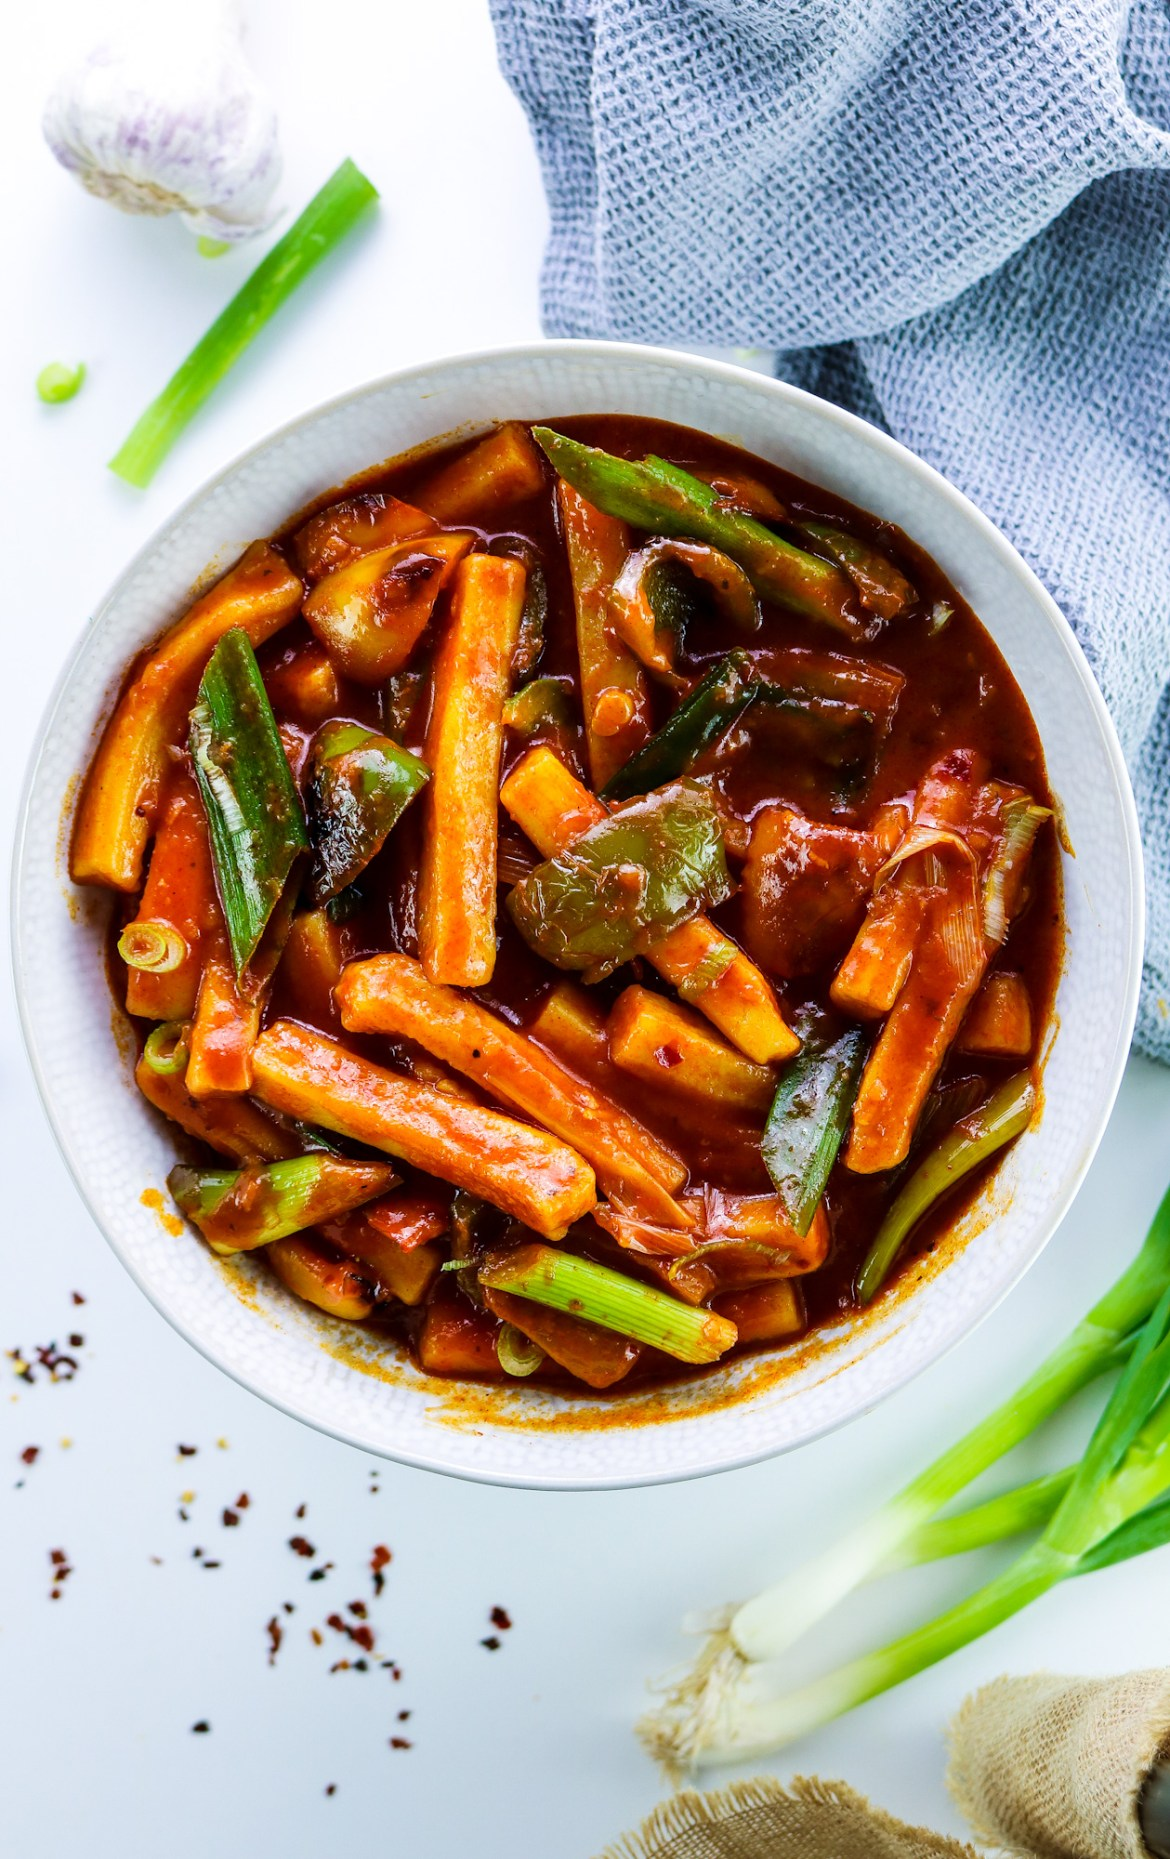 Korean Tteokbokki (떡볶이) with Peppers in a white bowl with white chinese spoon in the bowl, a bowl of kimchi in the corner, spring onions, a grey cloth, and fresh garlic around the dish